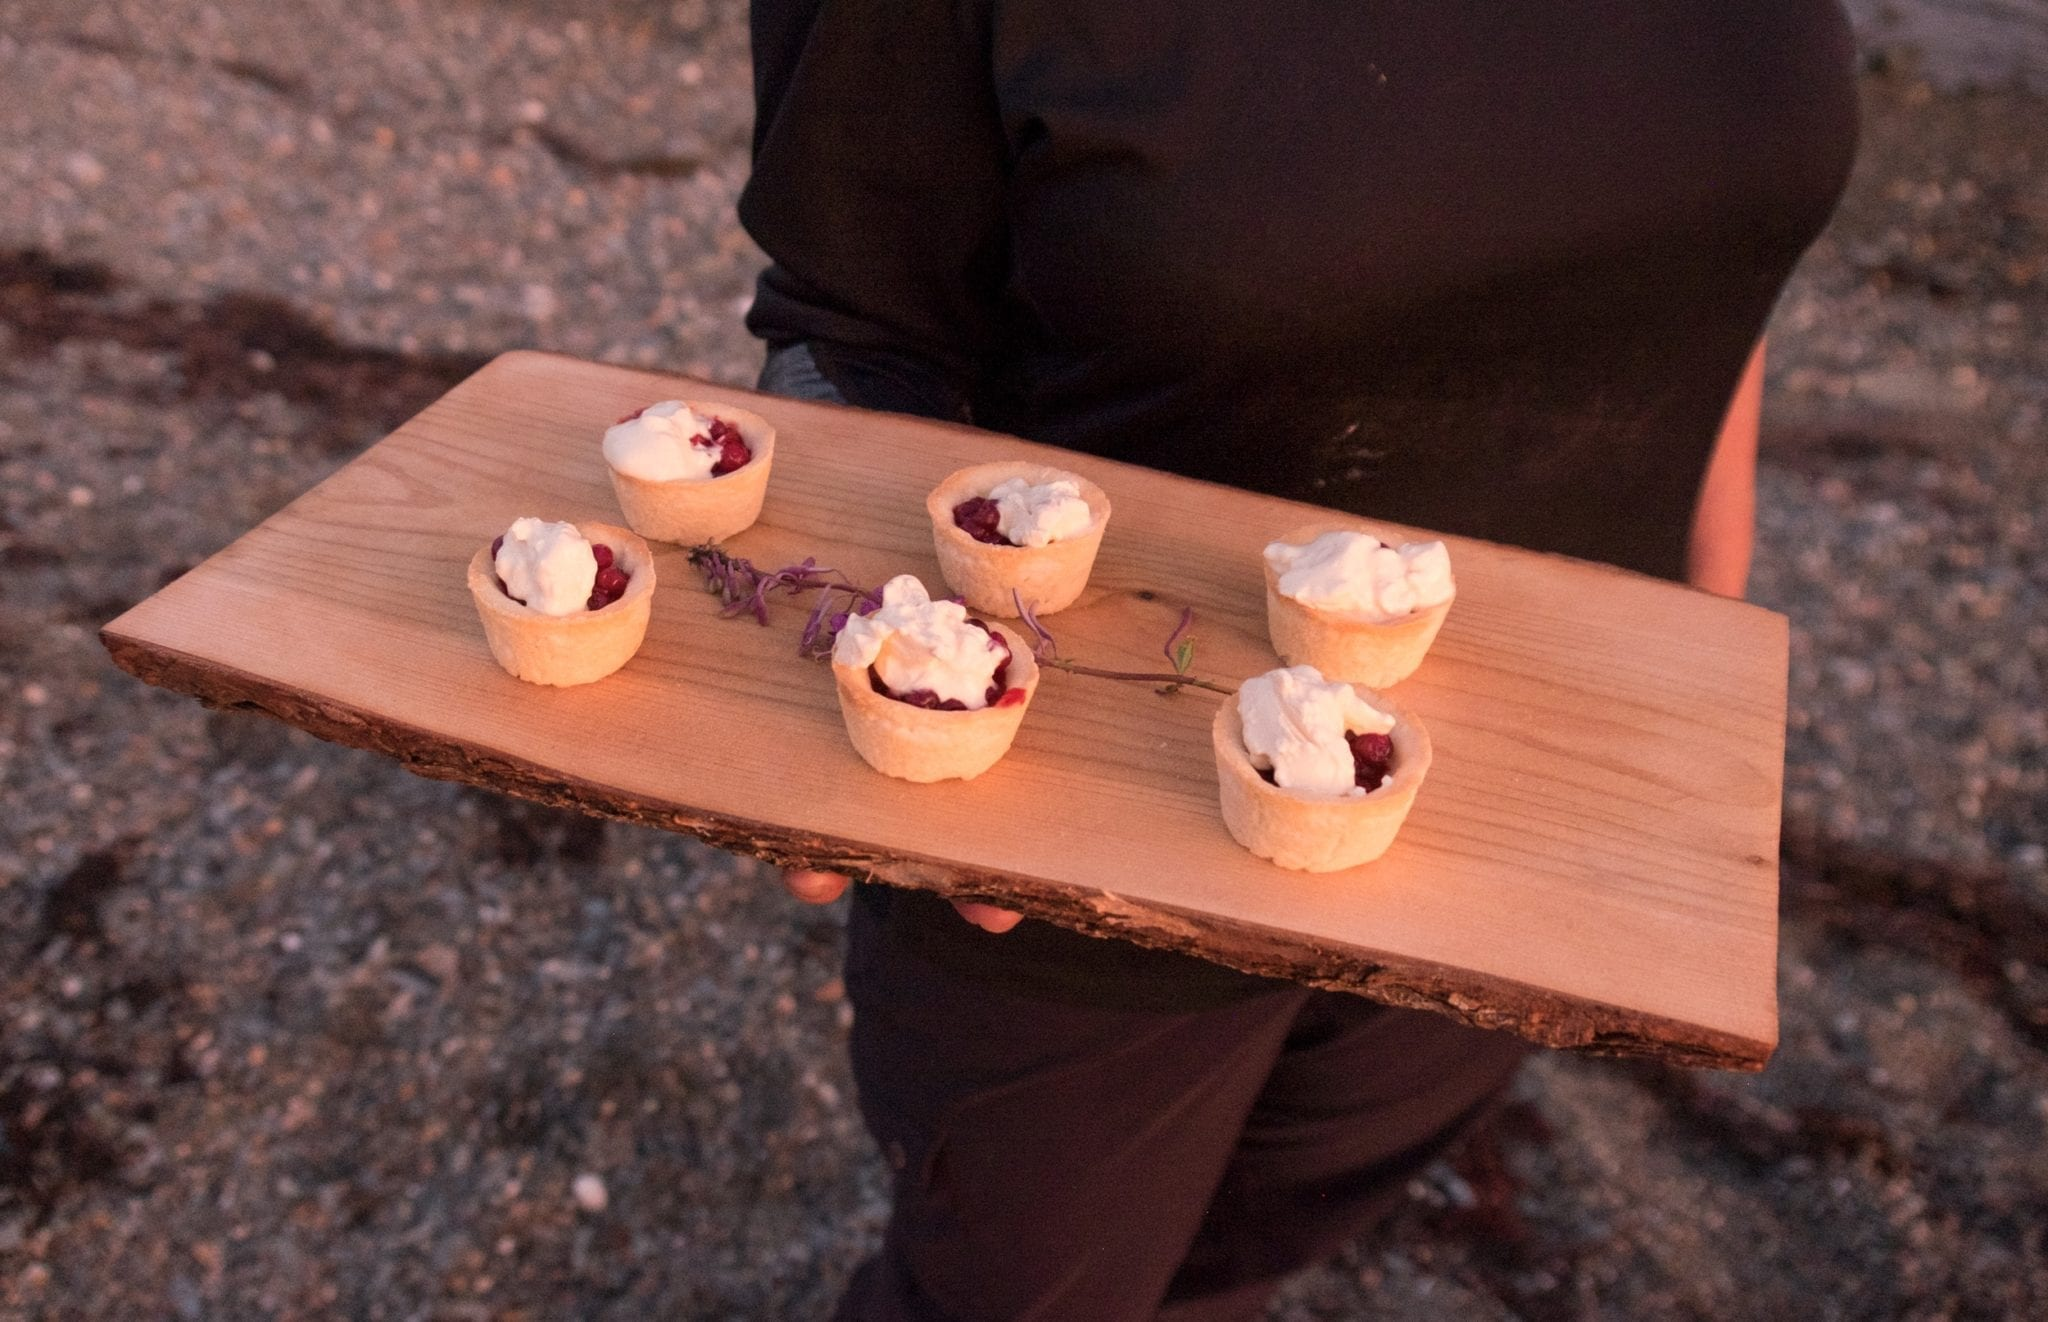 Crystal holds a wooden slab topped with six tiny tartlets filled with partridgeberries and topped with cream.